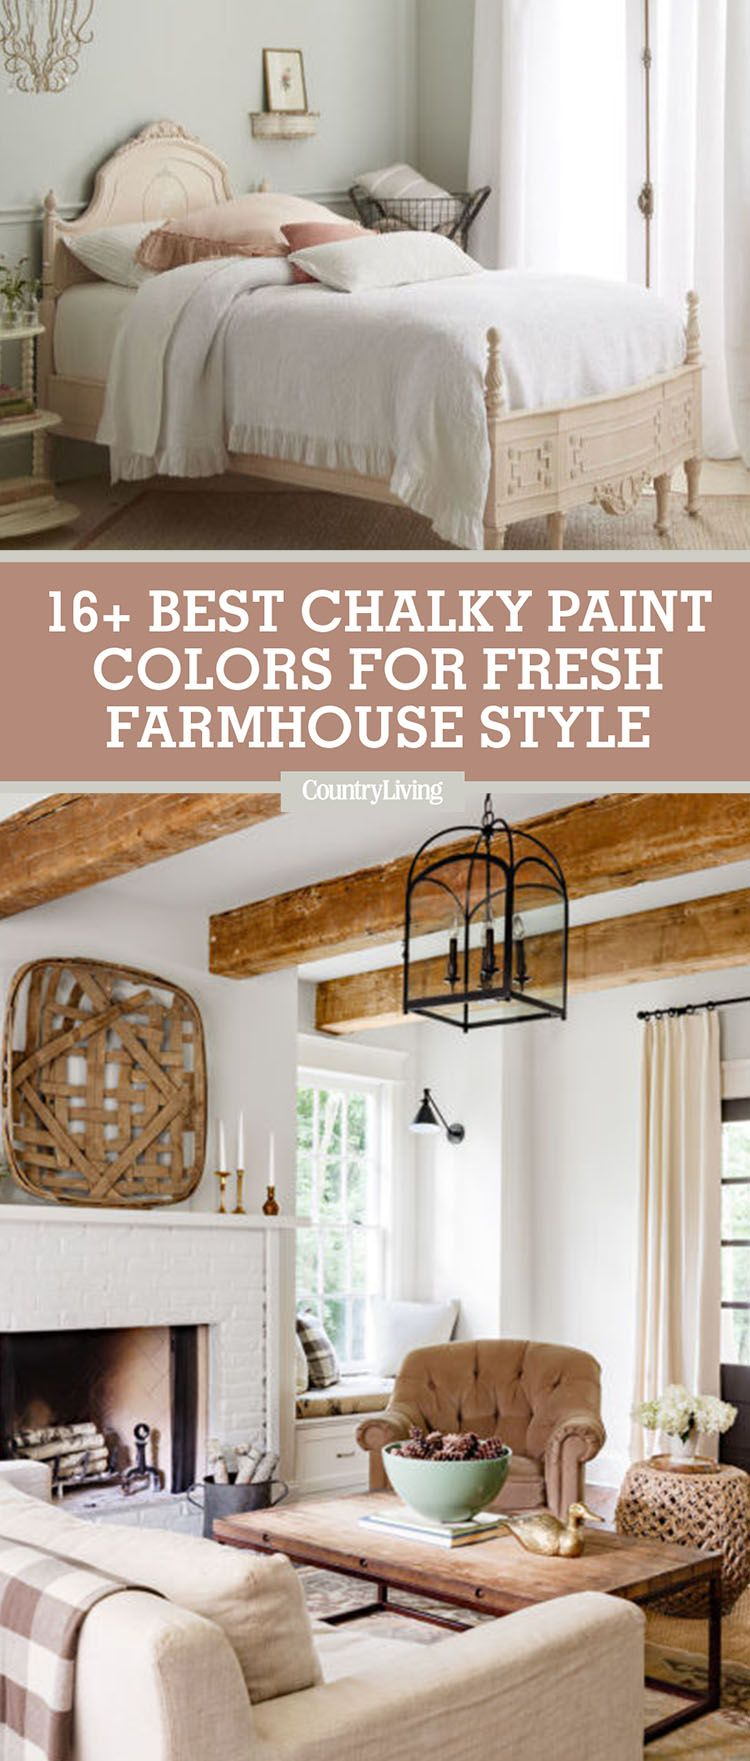 25 Chalk Paint Colors That Completely Nail The Farmhouse